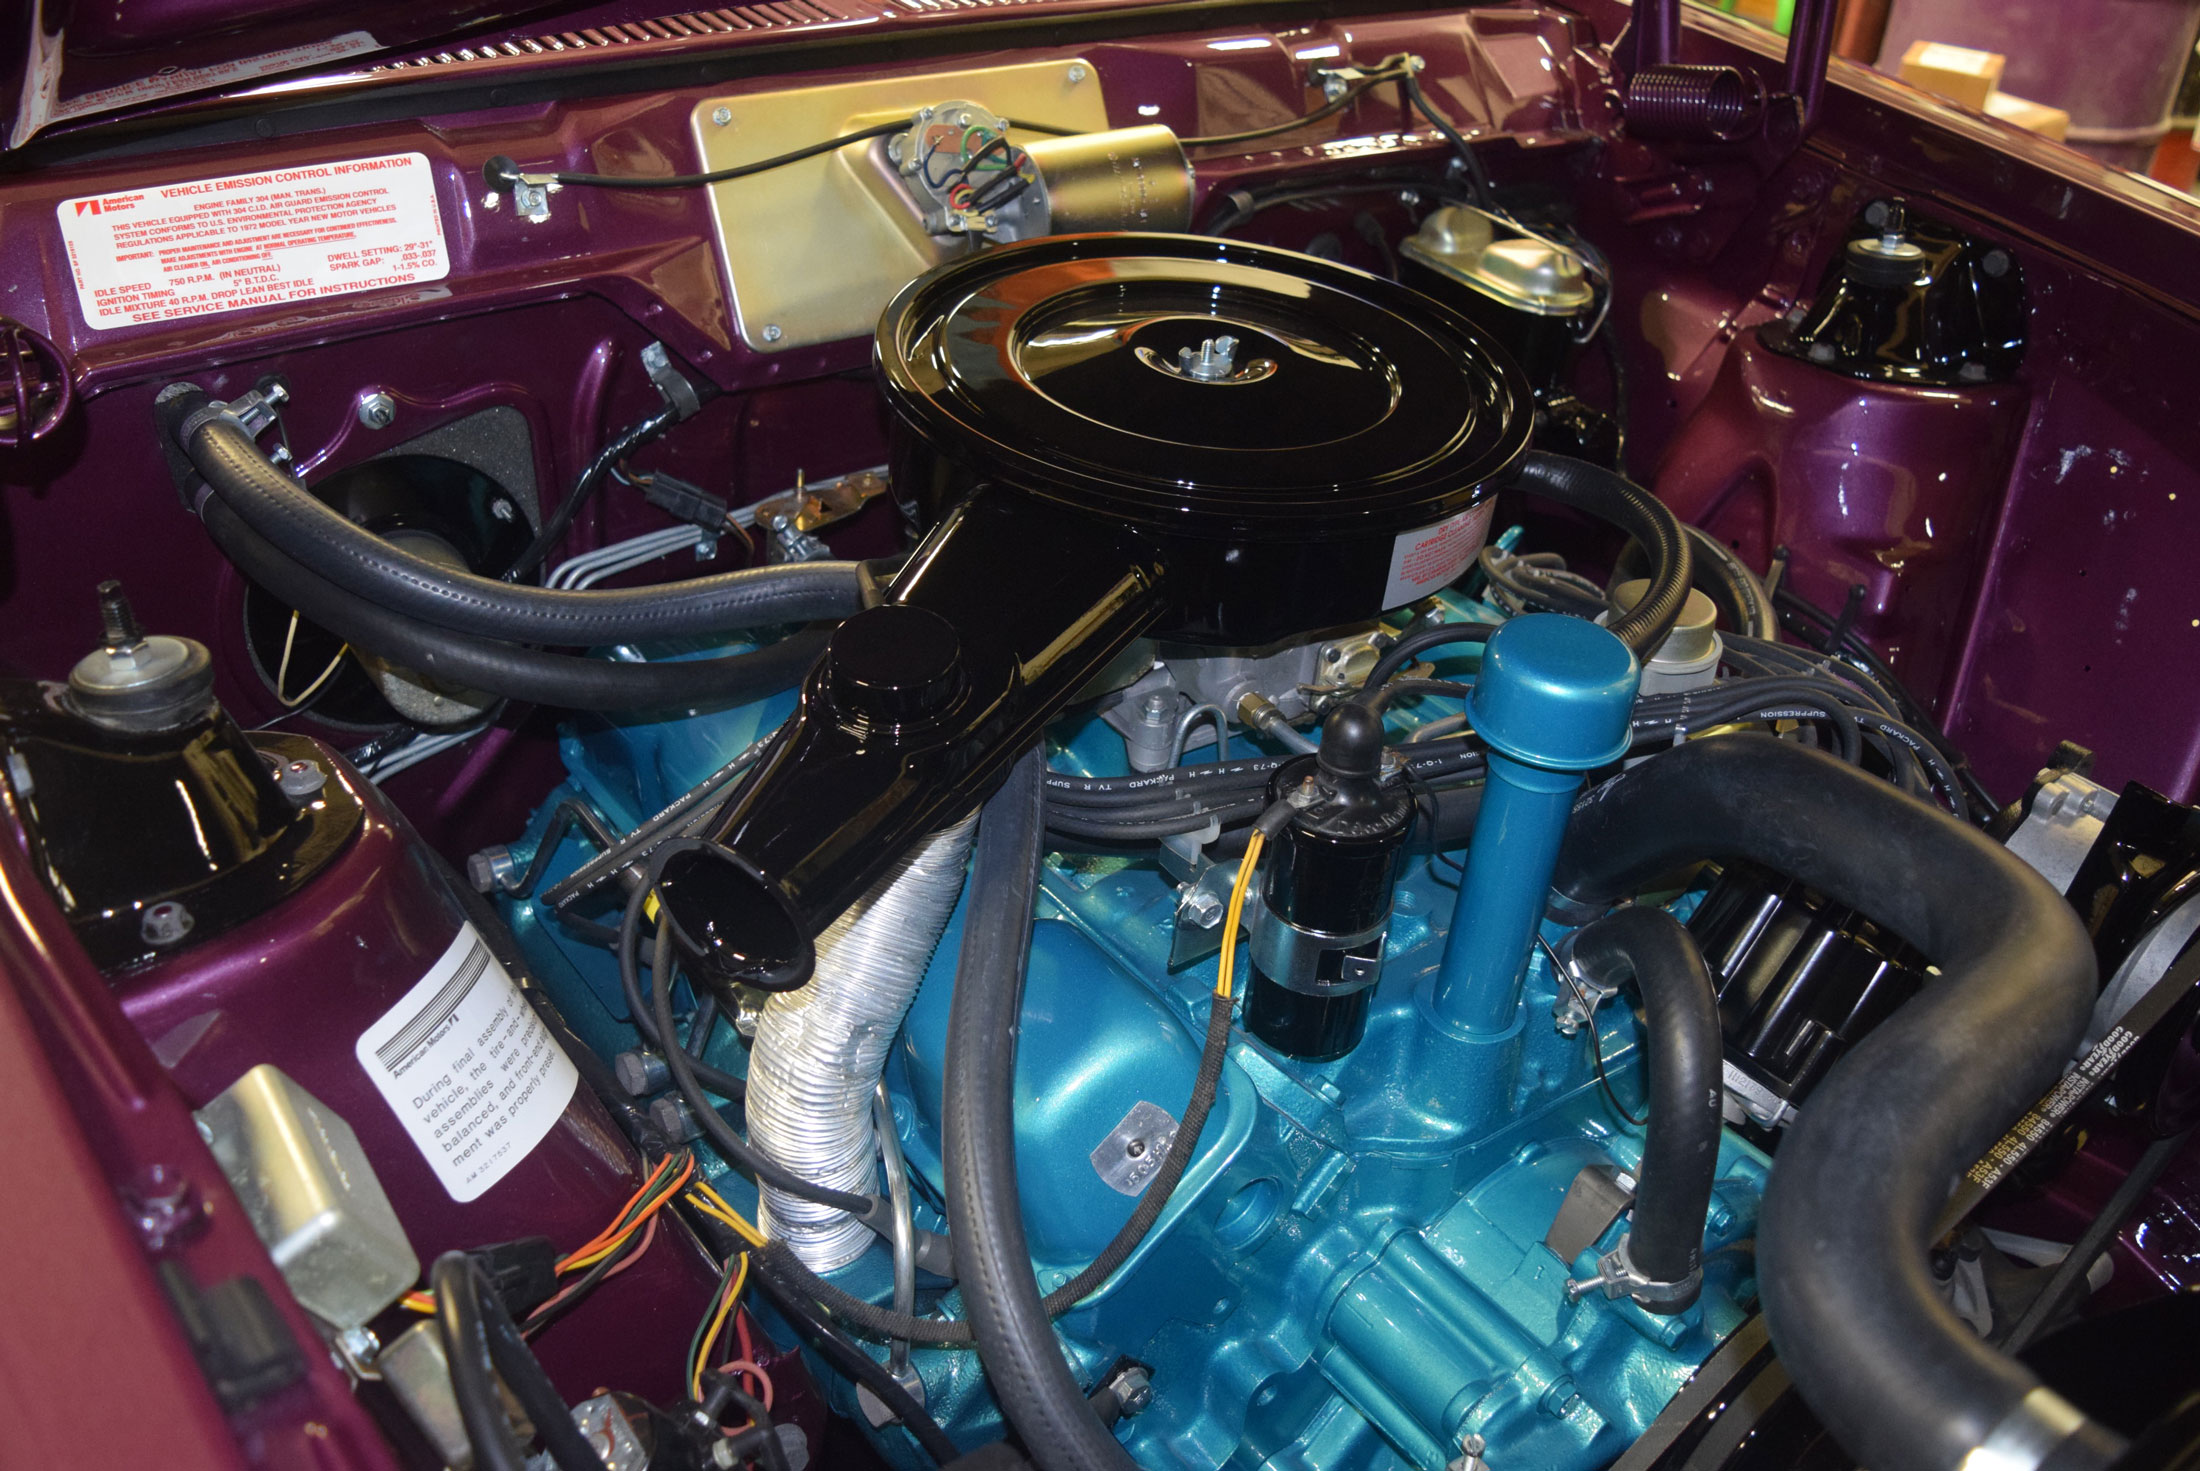 Brothers Collection Gremlin X 304 V-8 engine